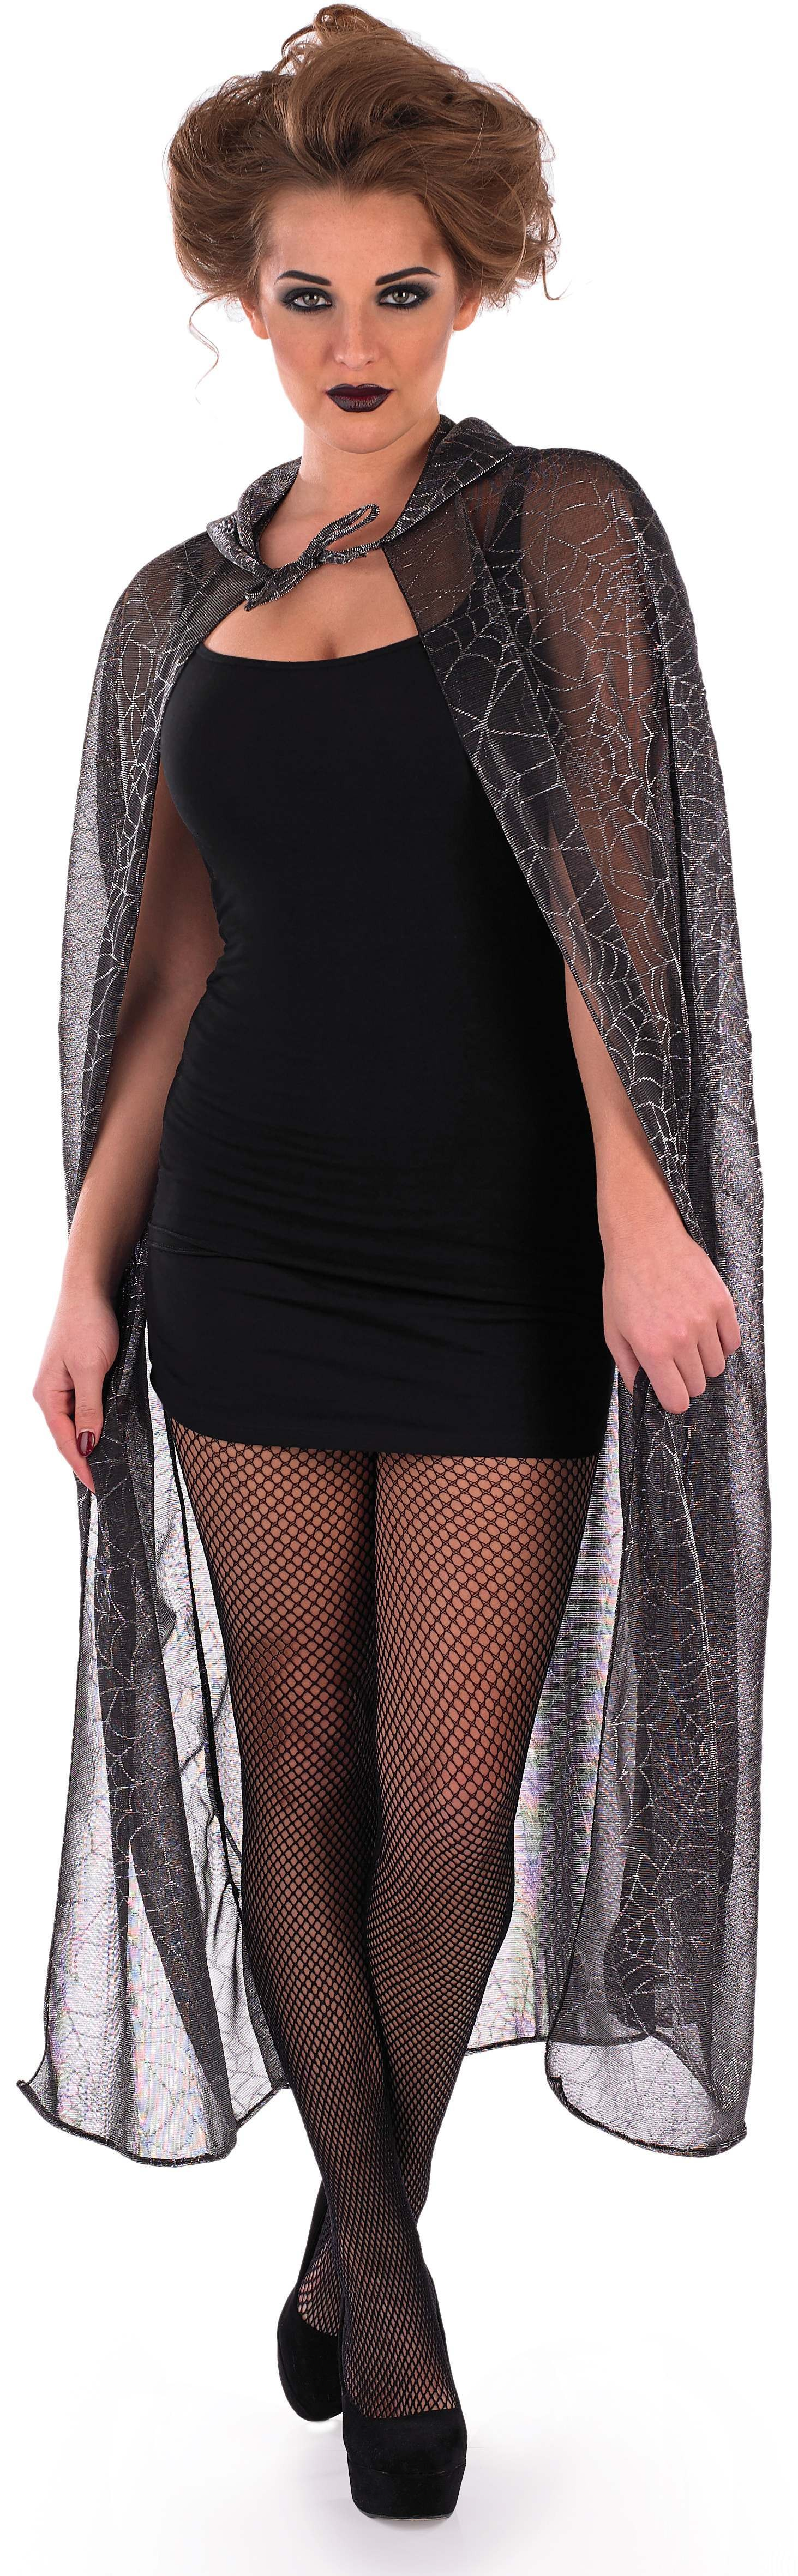 Ladies Grey (Hooded Spider Web Cape)Fancy Dress Costume